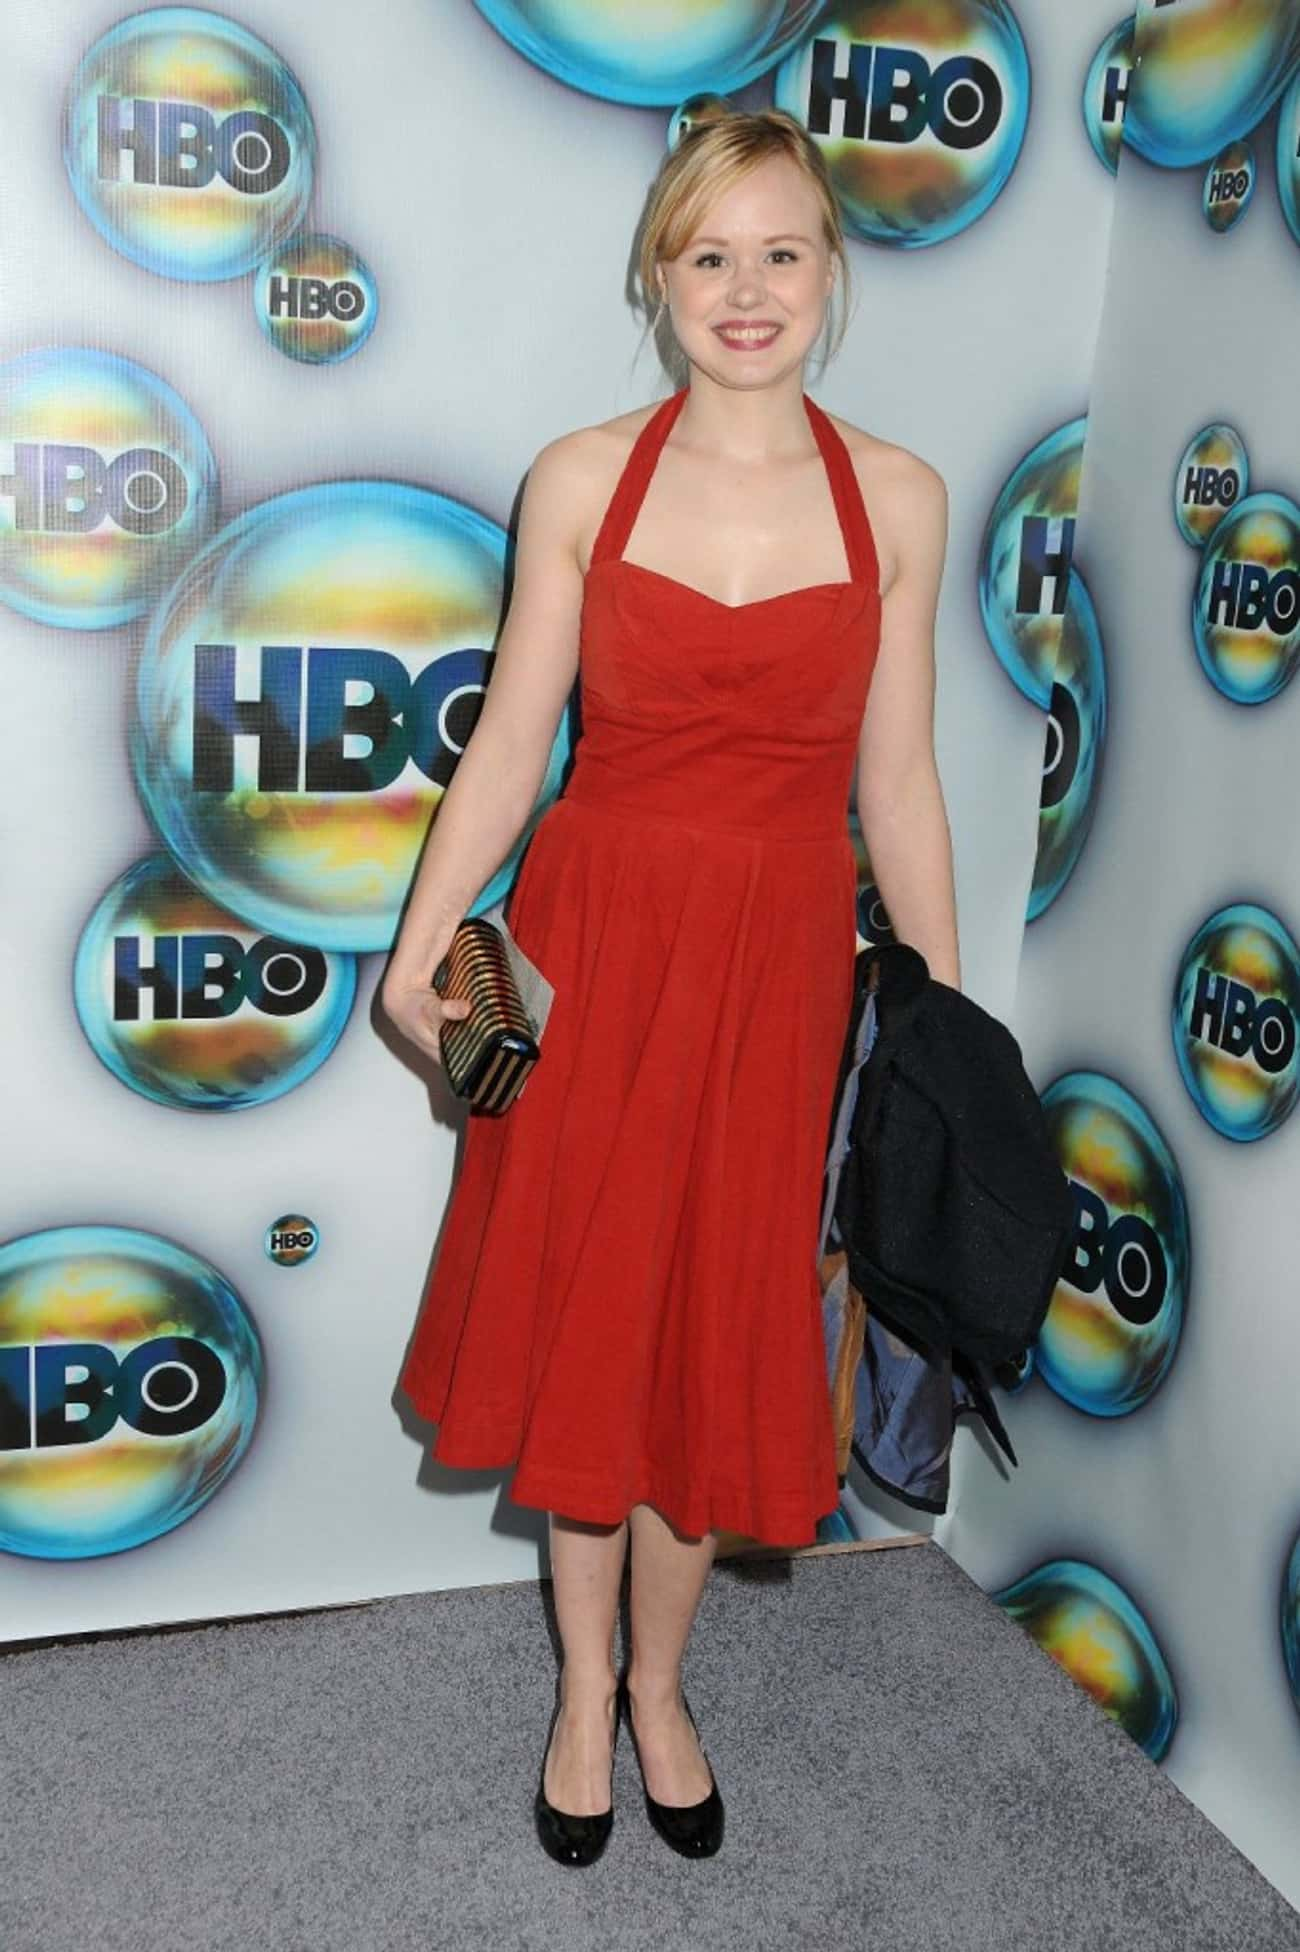 Alison Pill in Warehouse Halte is listed (or ranked) 4 on the list Hottest Alison Pill Photos